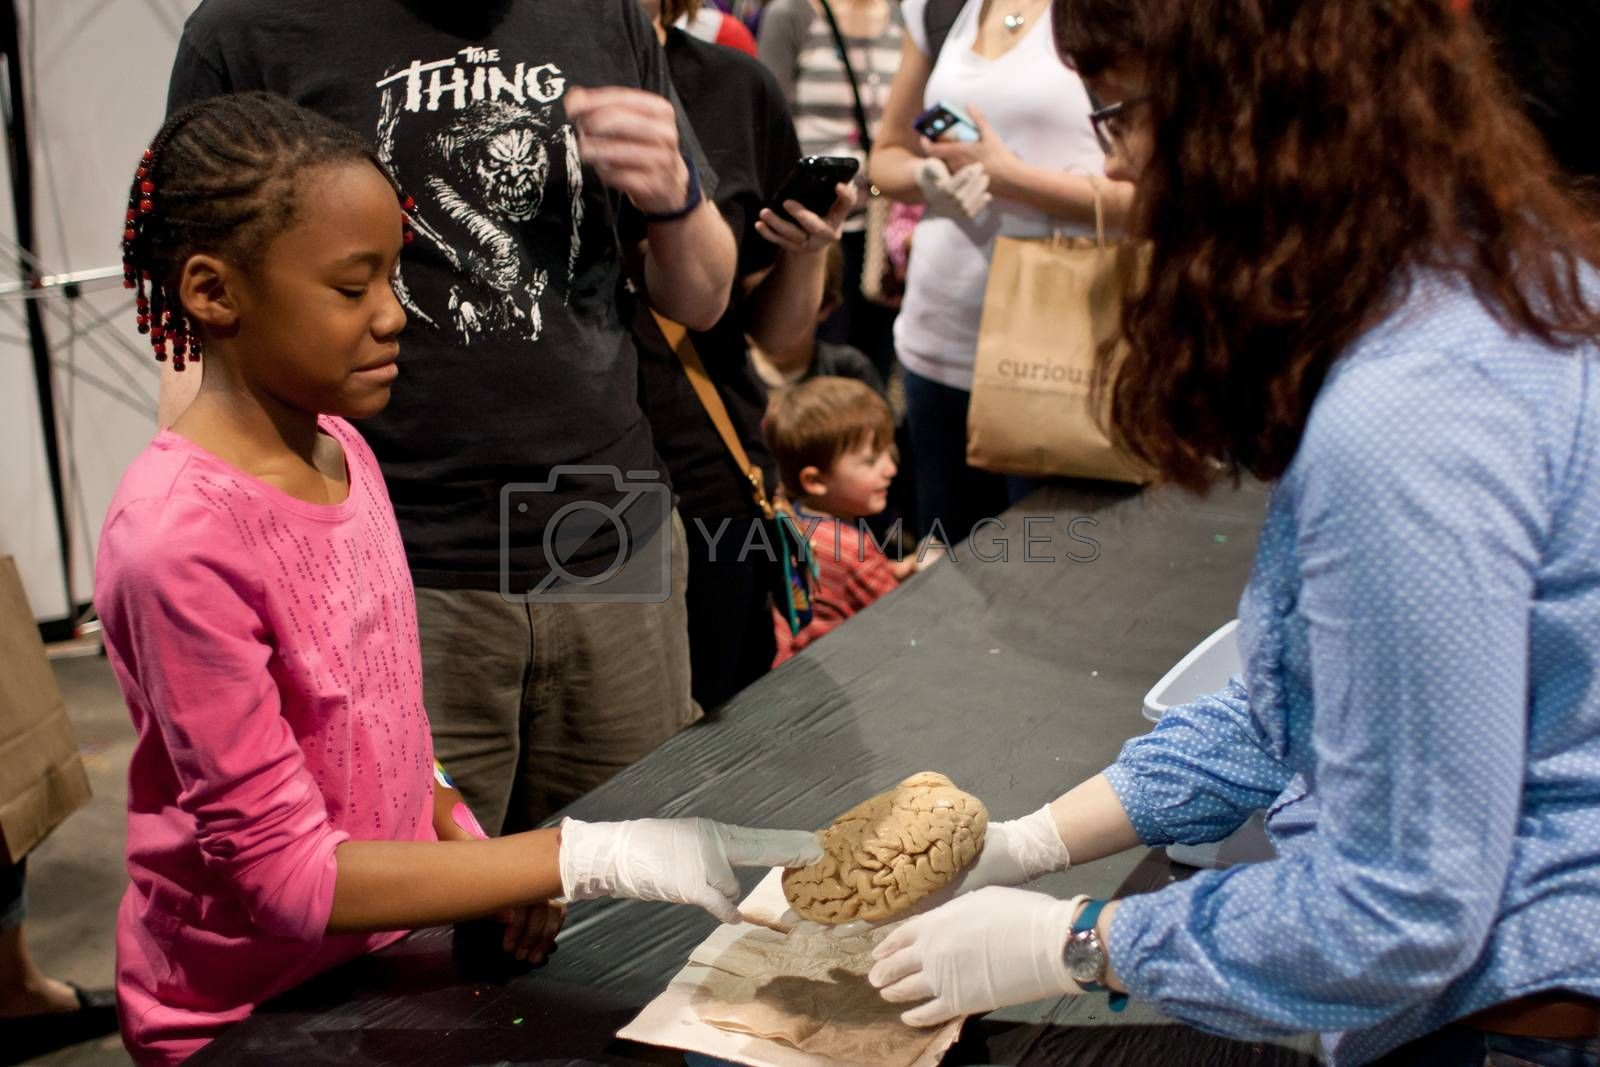 Royalty free image of Girl Grimaces Touching Human Brain At Science Expo by BluIz60